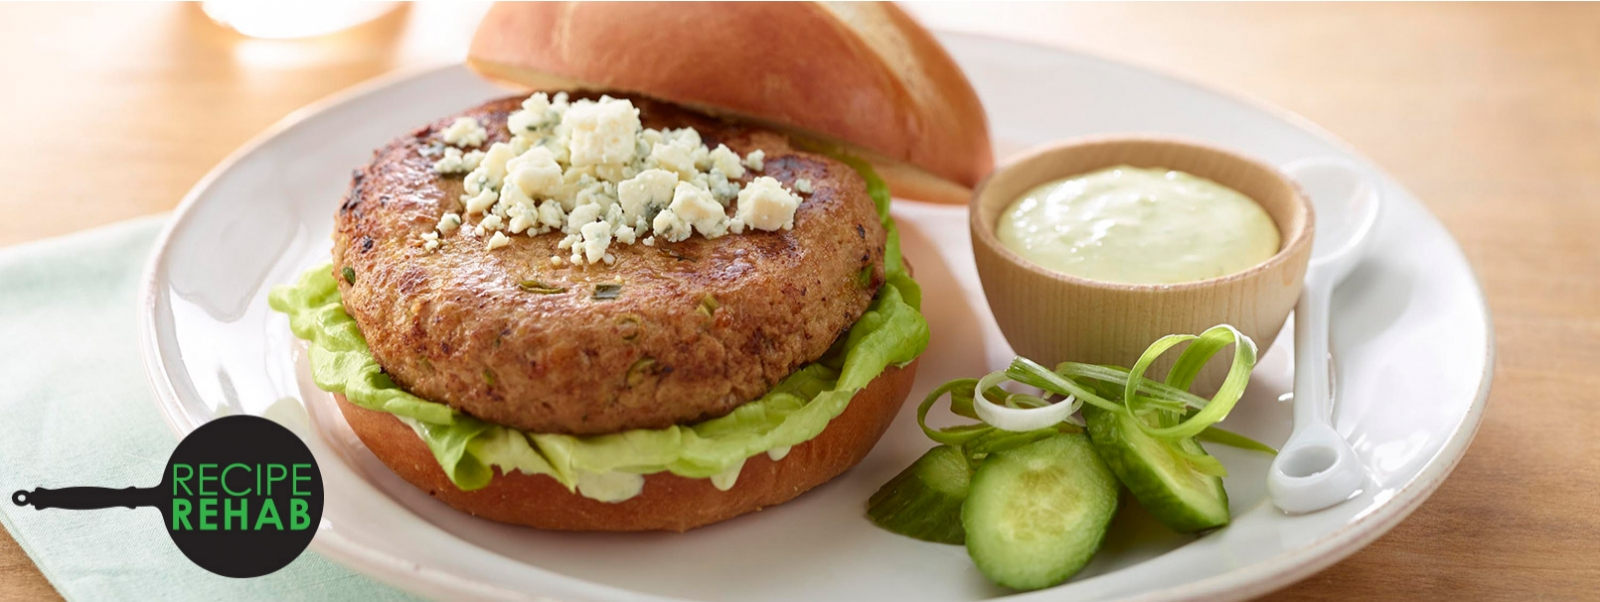 Recipe Rehab Horseradish Turkey Burgers